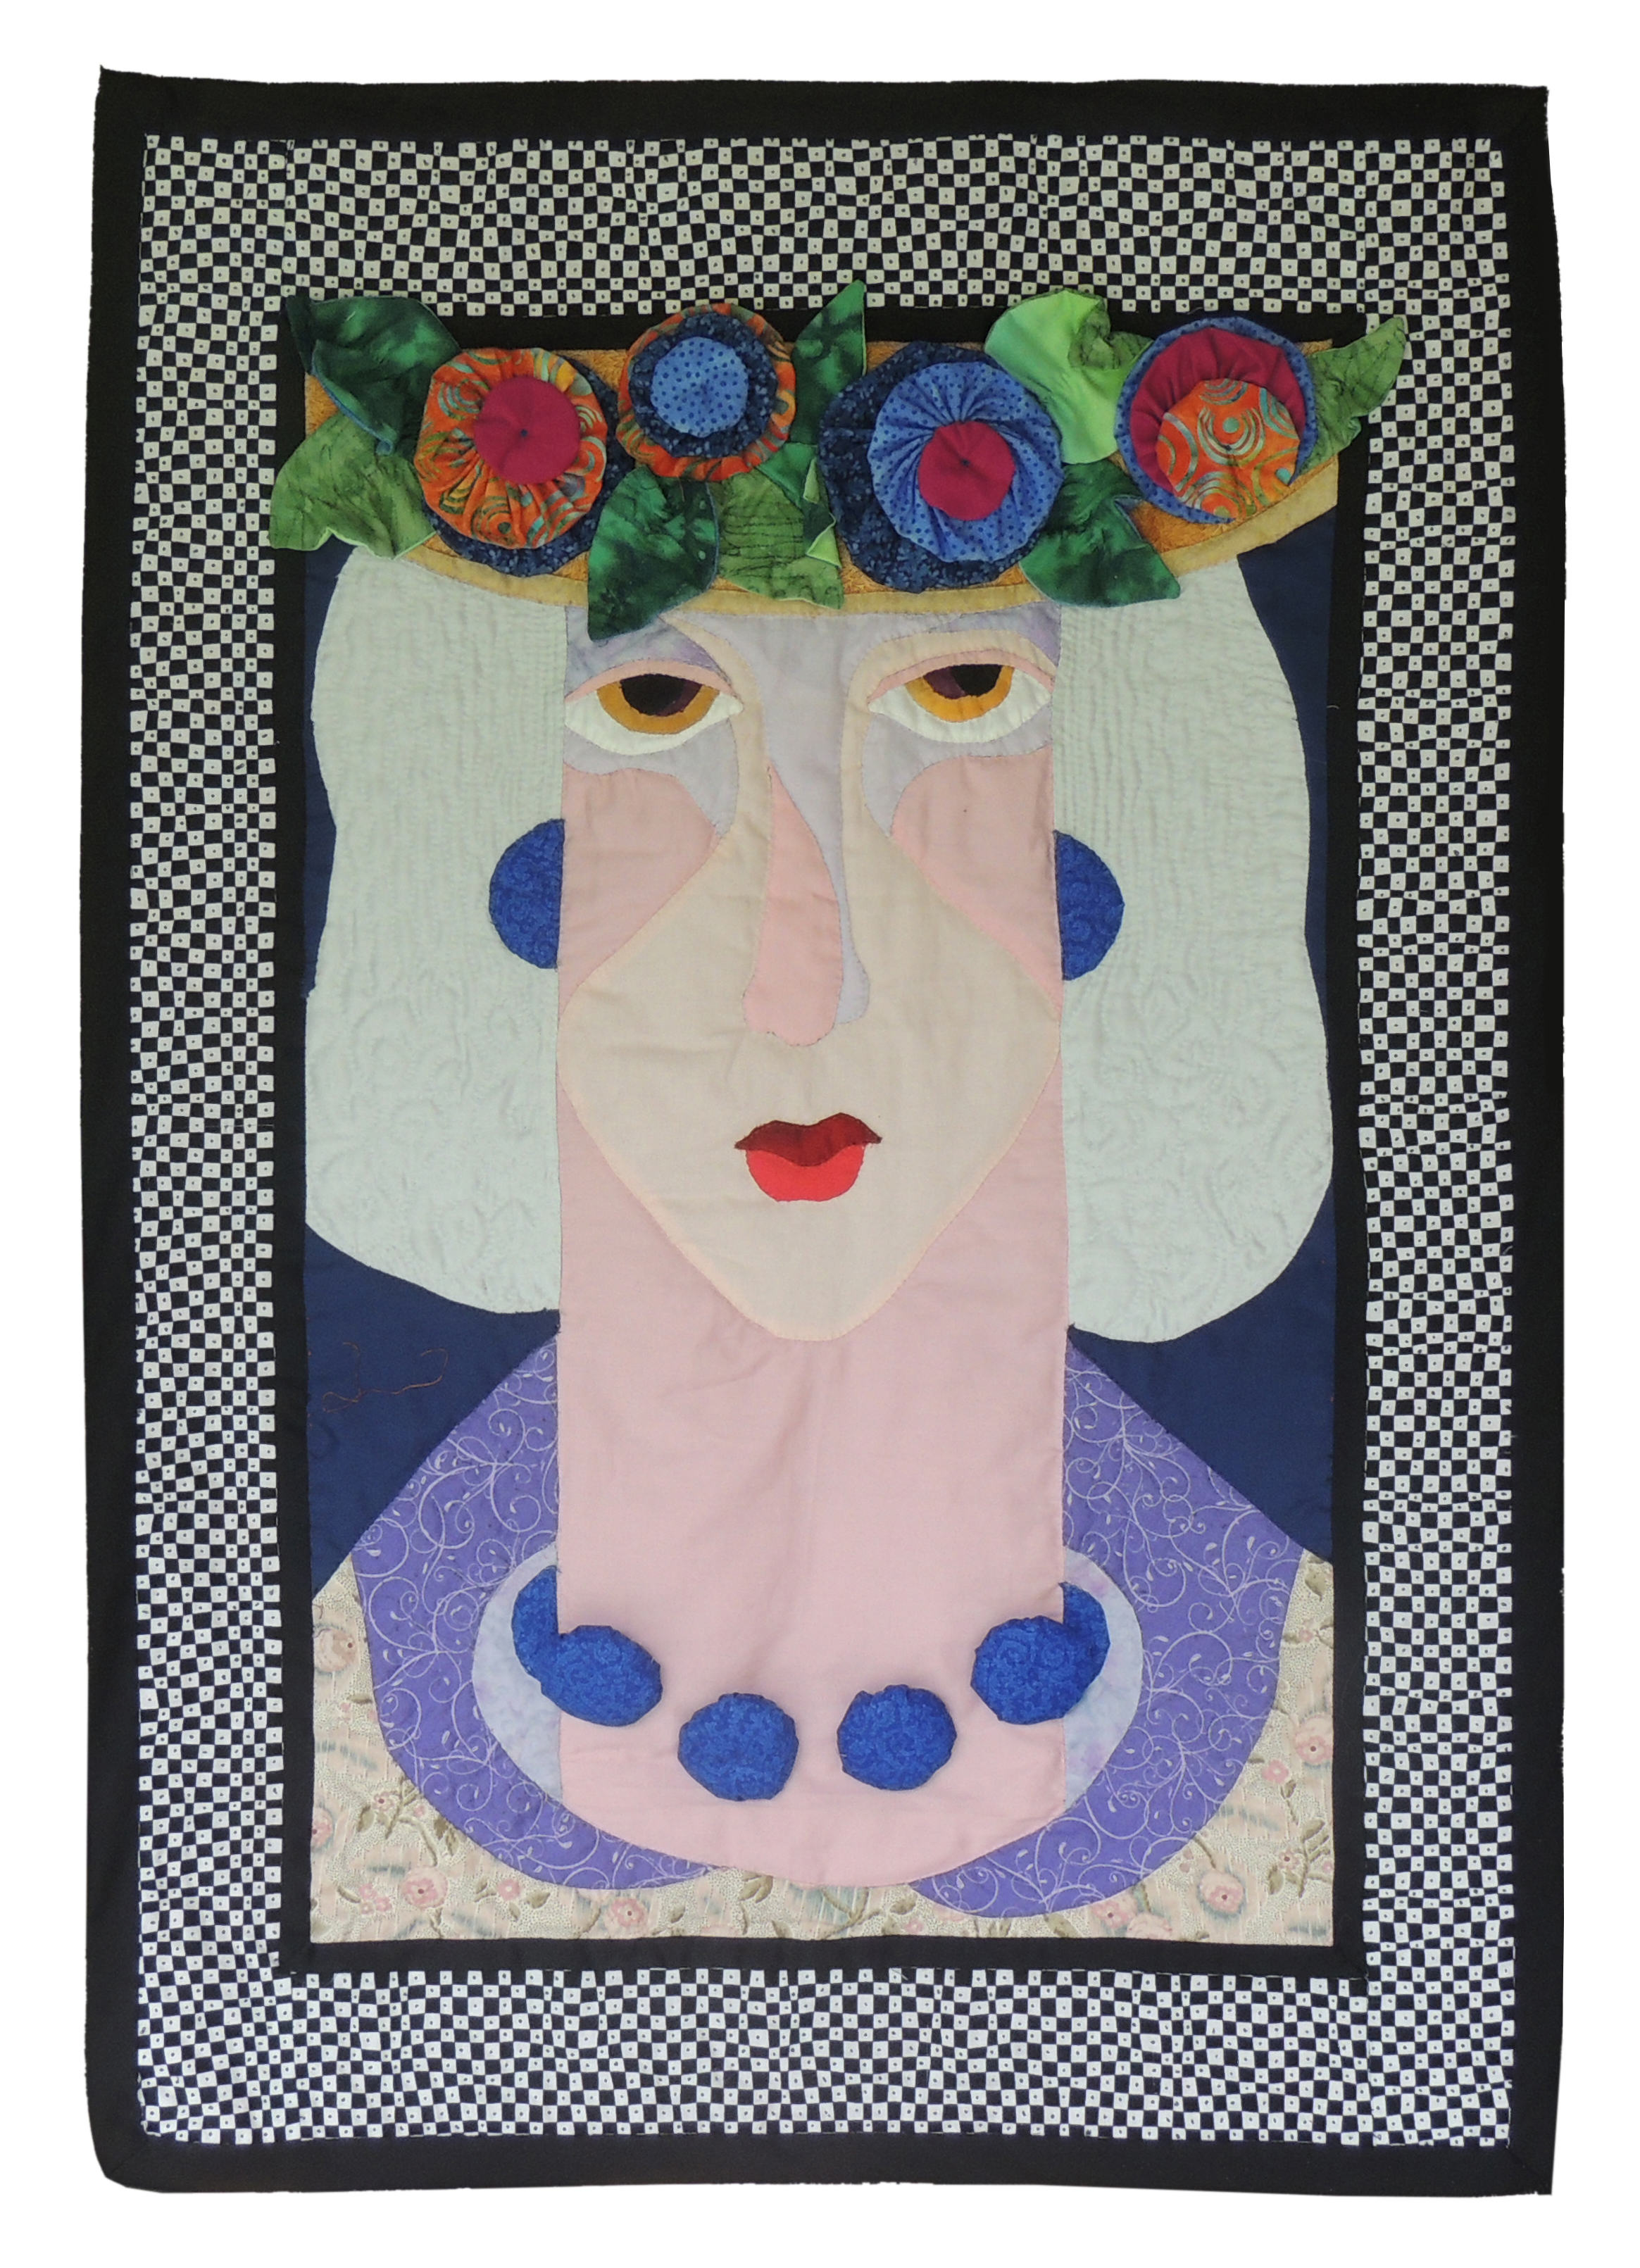 Marianne Rabb Britton | WHITE HAIR, FLOWERED HAT, BLUE NECKLACE | Fabric & Embroidery | 34.5 x 25"